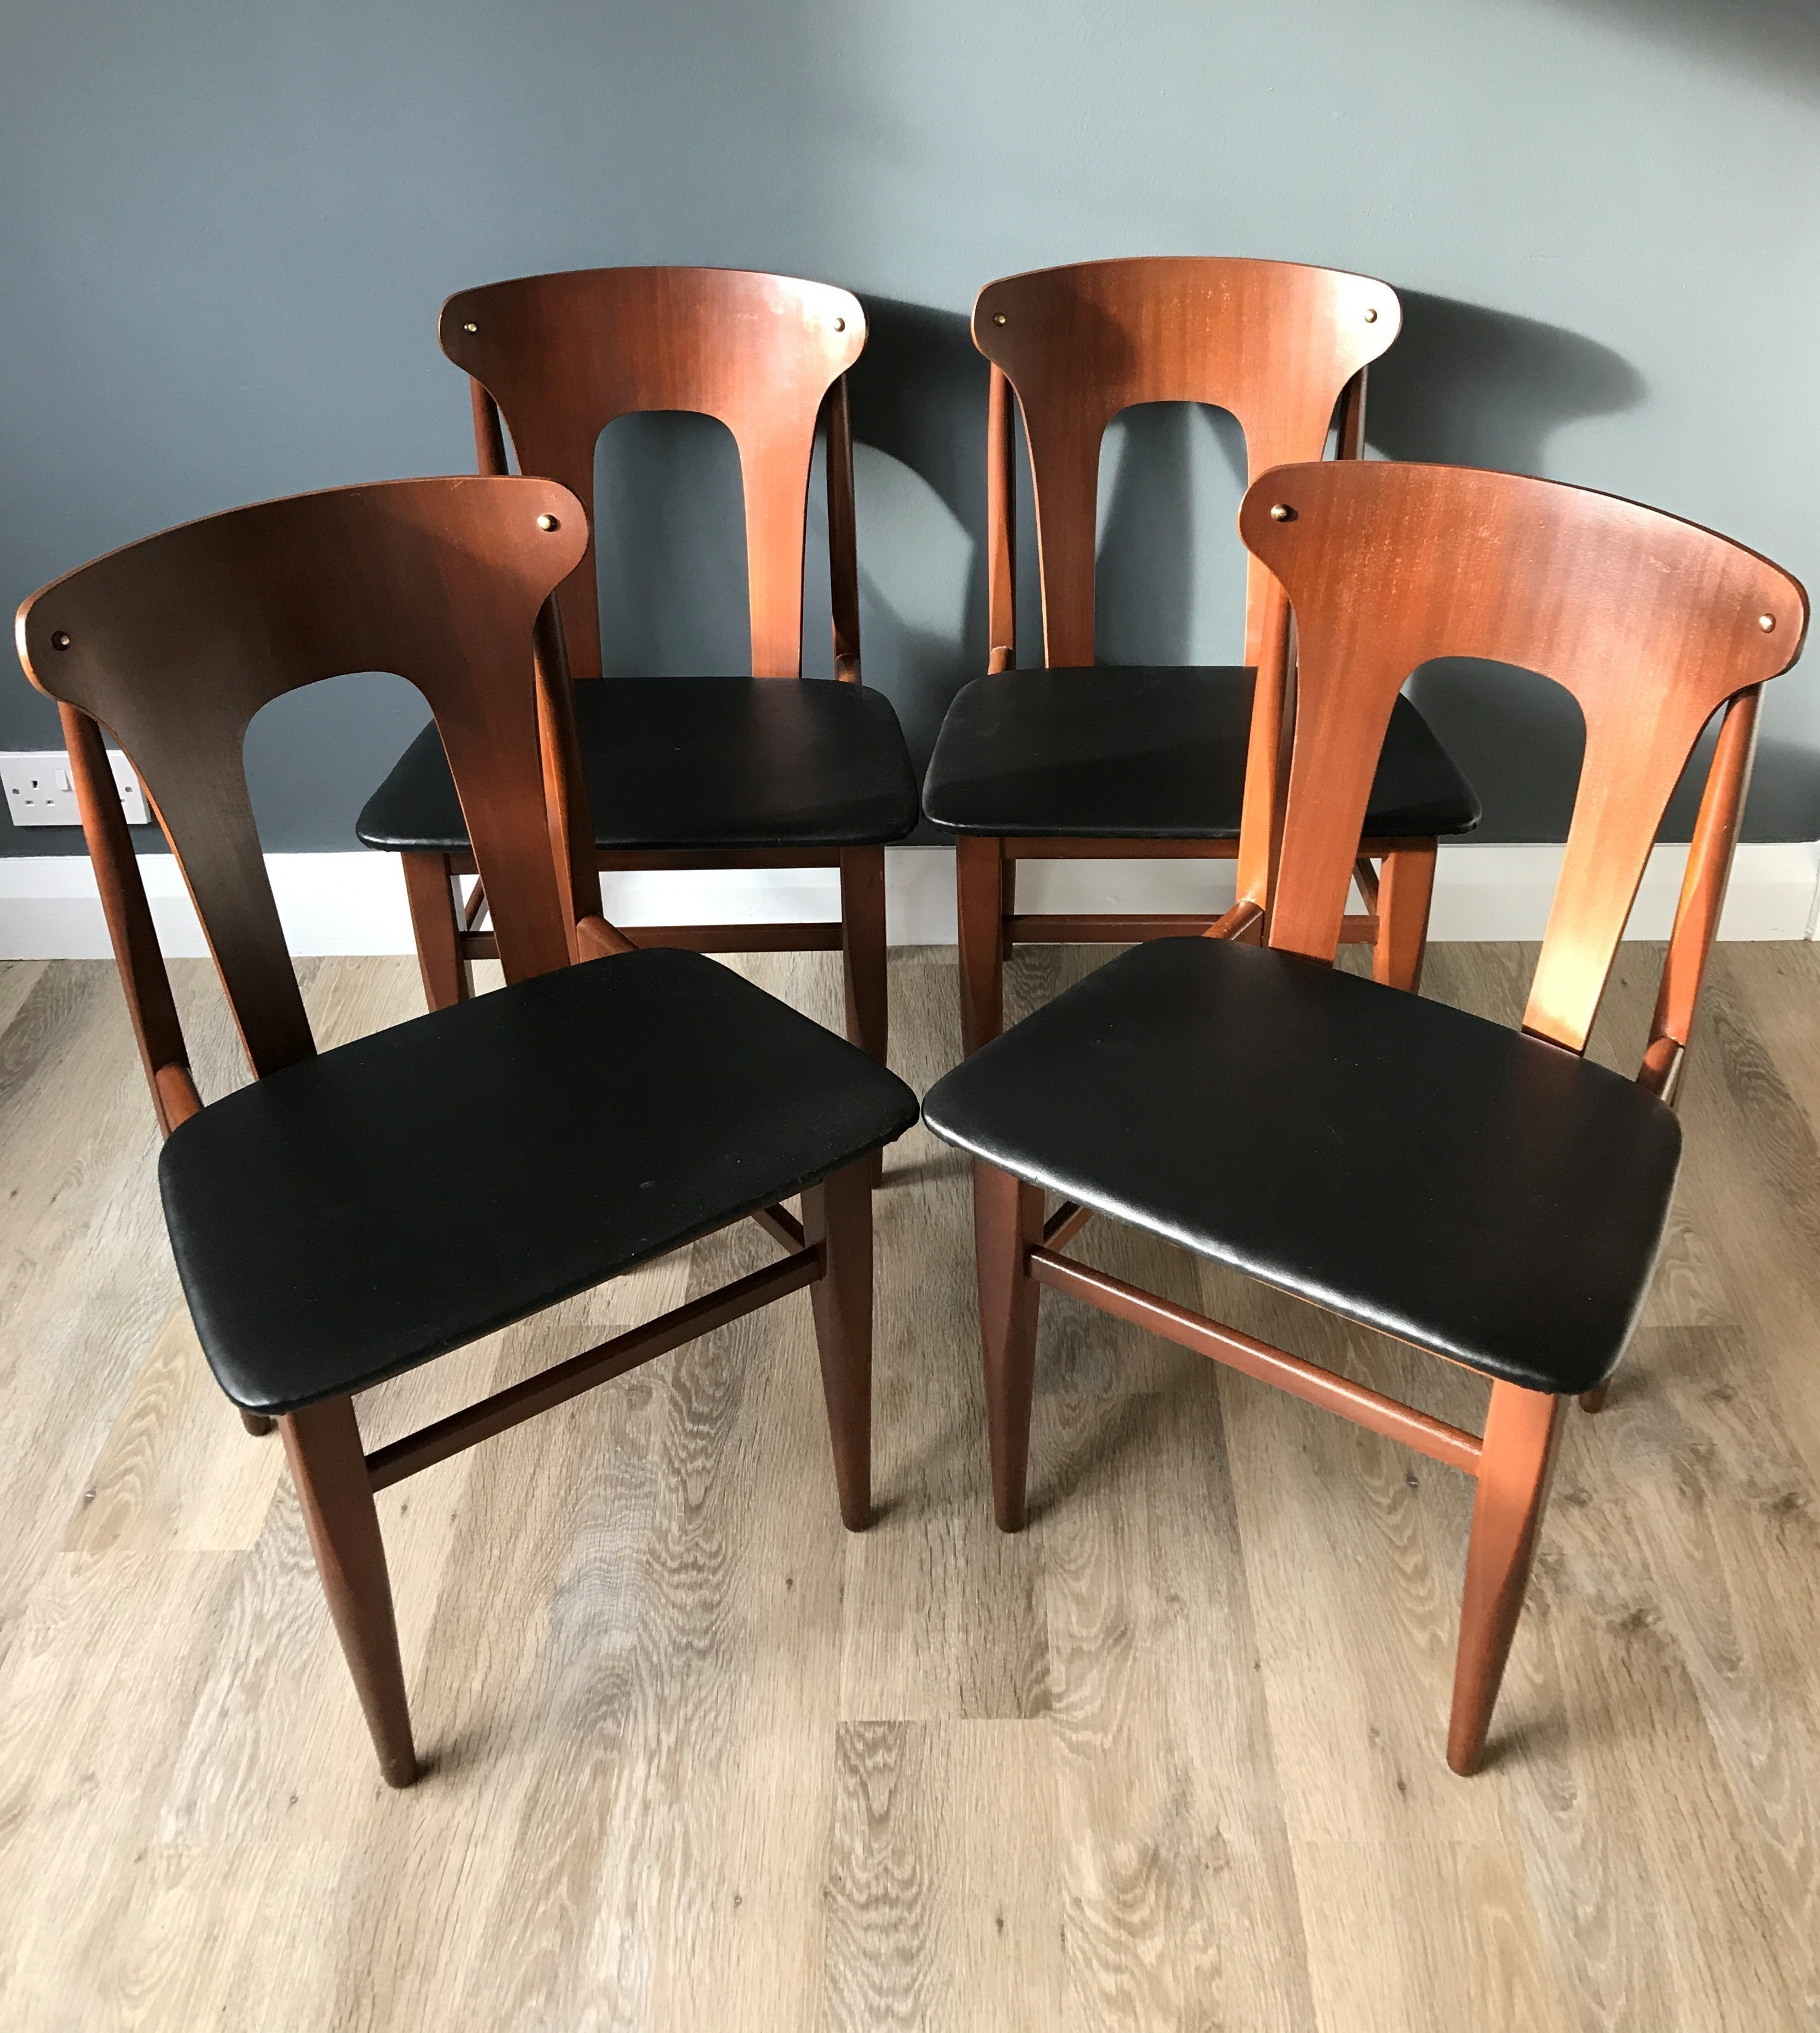 Brilliant Set Of 4 Mid Century Danish Teak Dining Chairs With Black Vinyl Seats Gmtry Best Dining Table And Chair Ideas Images Gmtryco